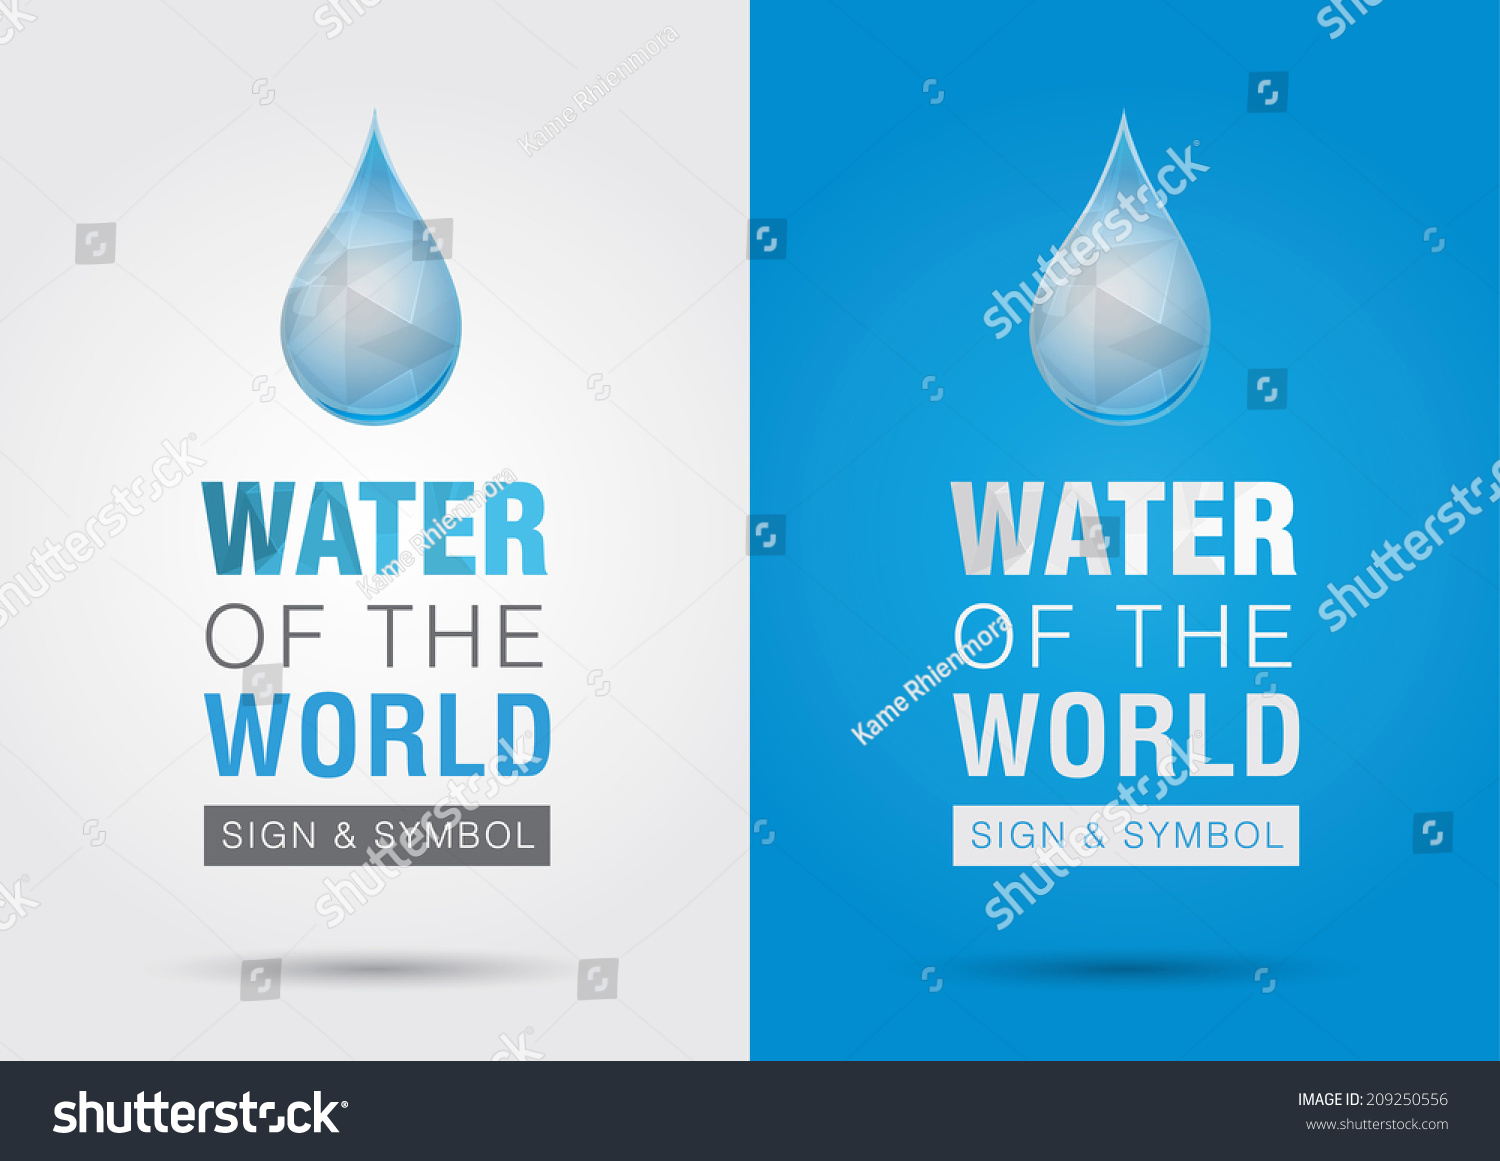 Water worldicon signage symbol water drop stock vector 209250556 water of the worldicon signage symbol water drop with the world creative marketing biocorpaavc Image collections